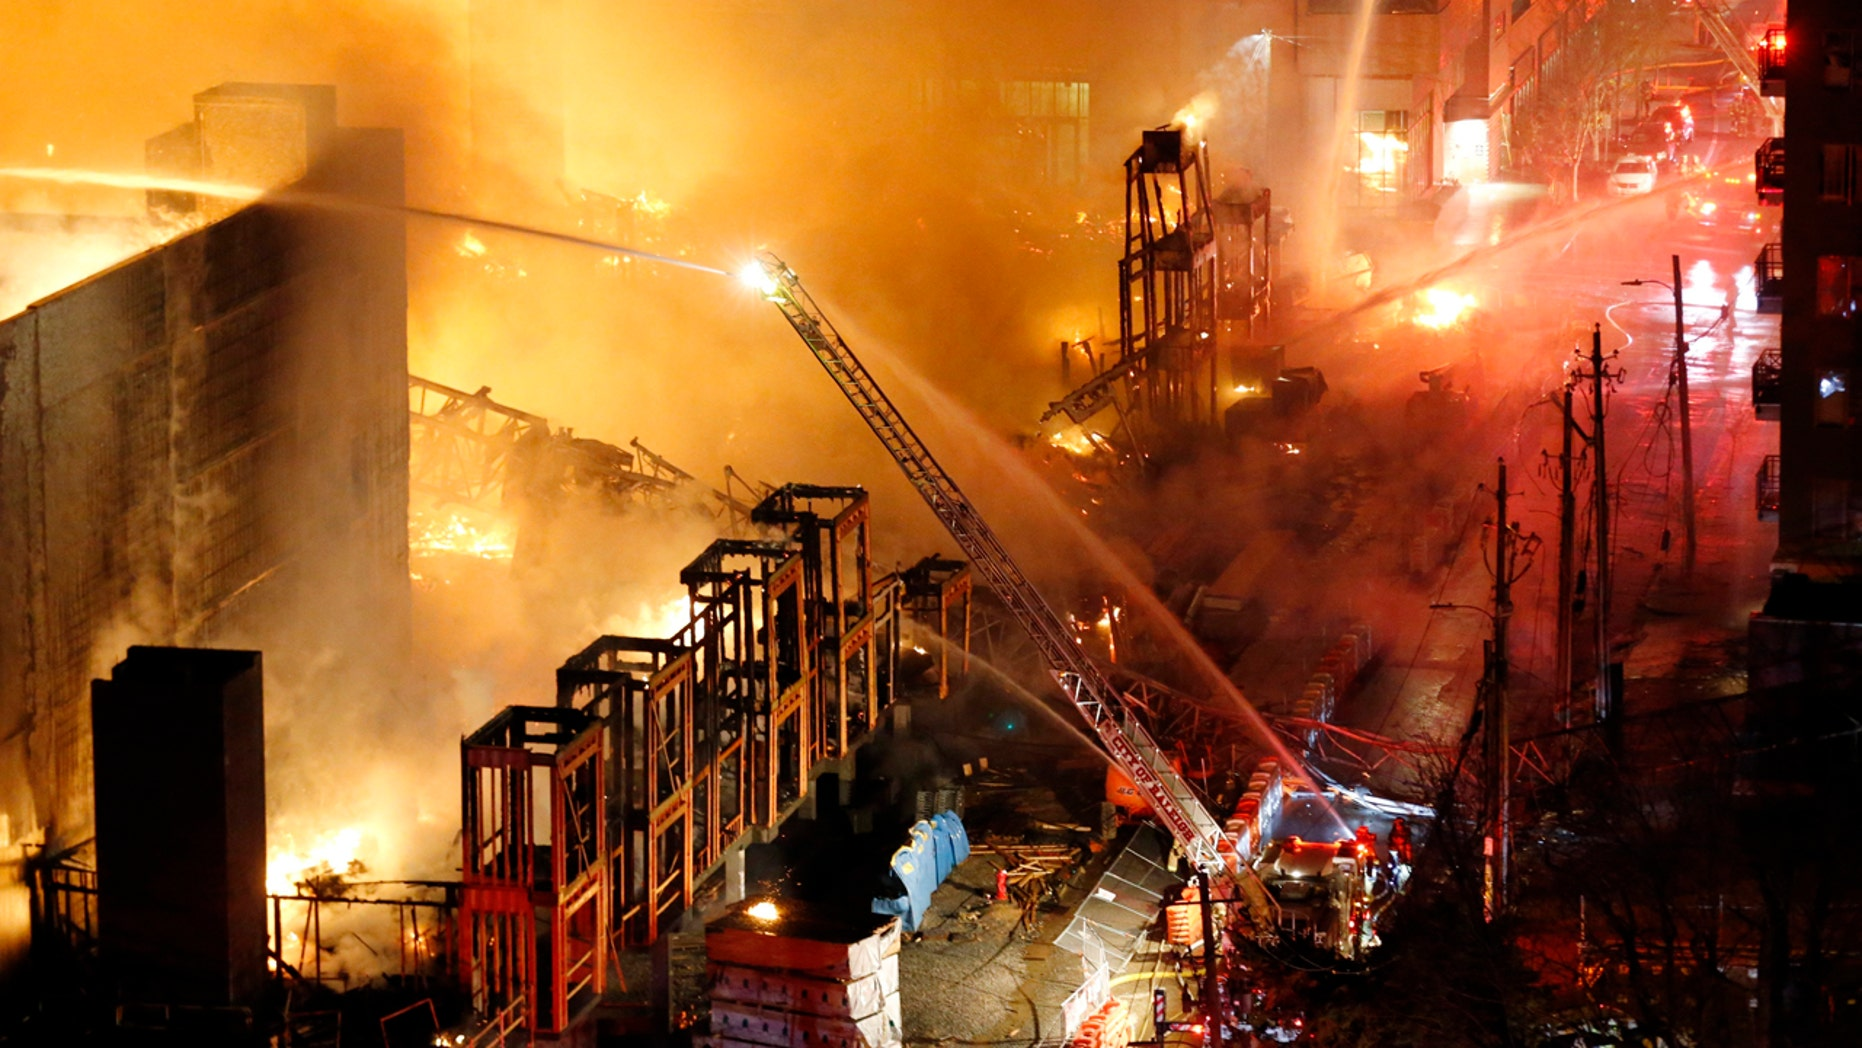 A large fire engulfed a building under construction in downtown Raleigh, N.C.   Thursday night, March 16, 2017.  A statement from the Raleigh Police Department says preliminary information indicates there were no injuries.